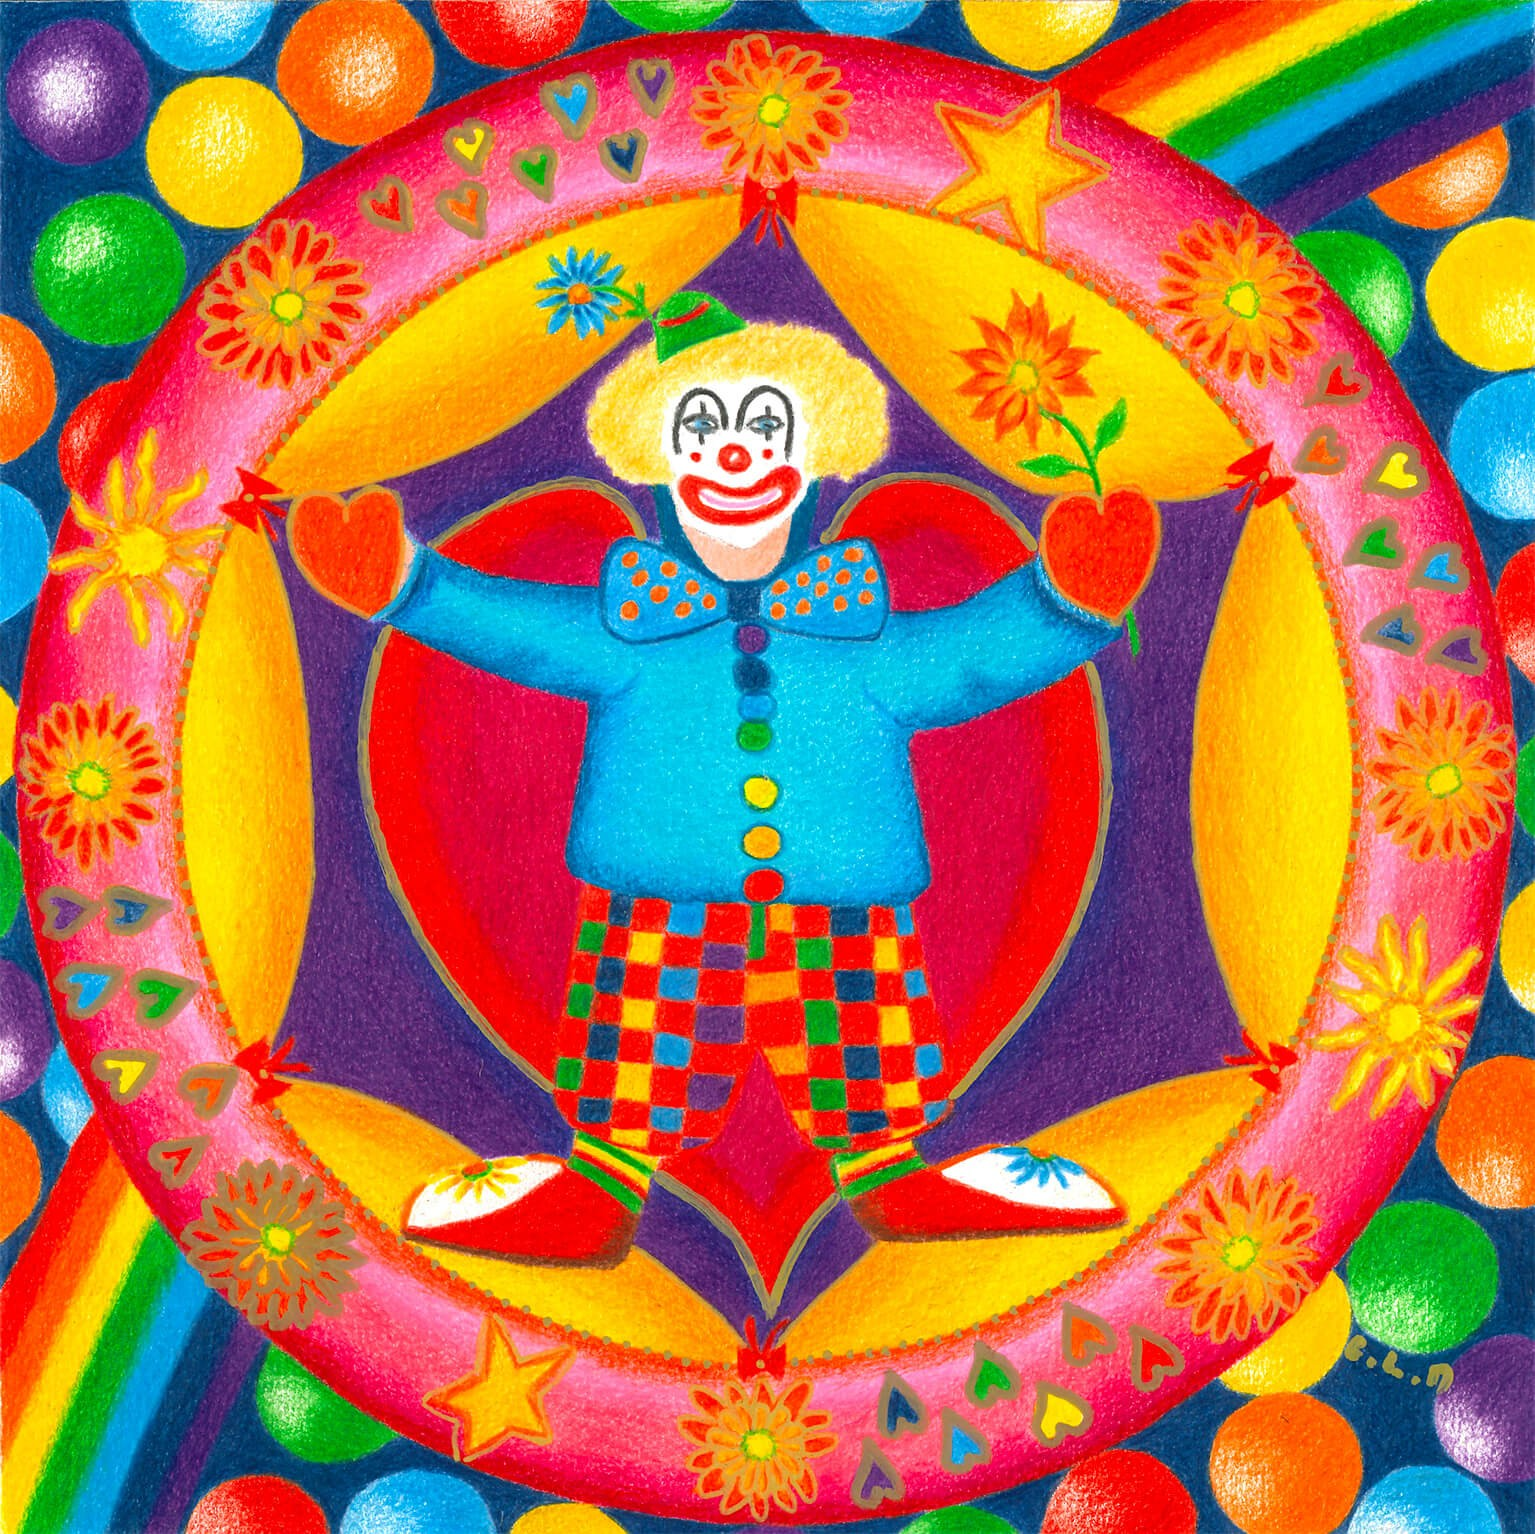 Coeur de Clown